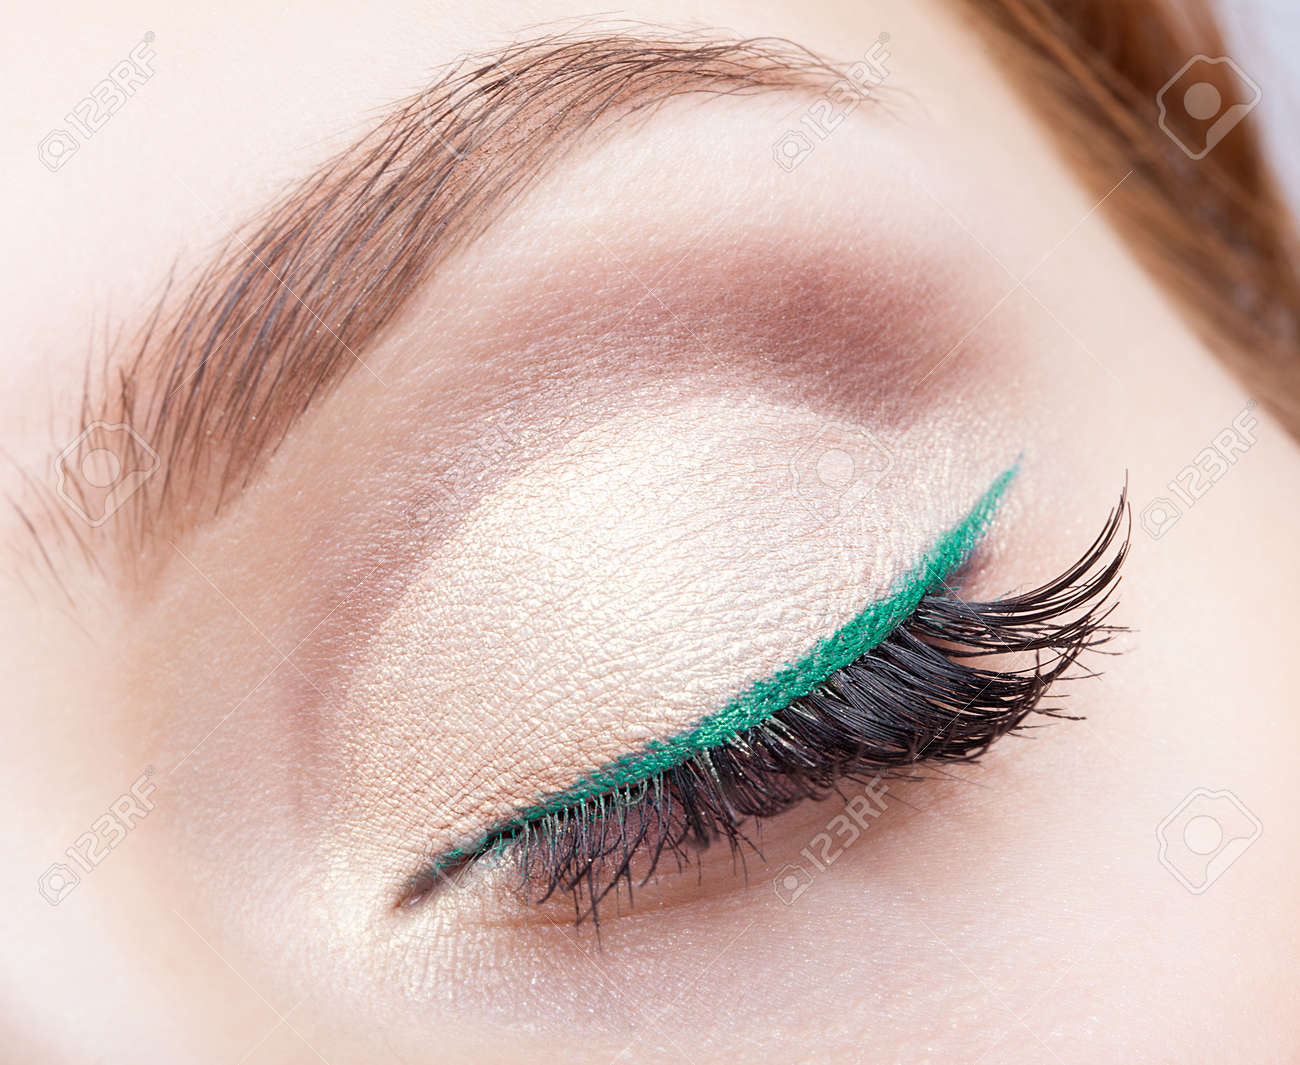 Closeup shot of female face makeup with closed eye and green eyeliner - 55841606